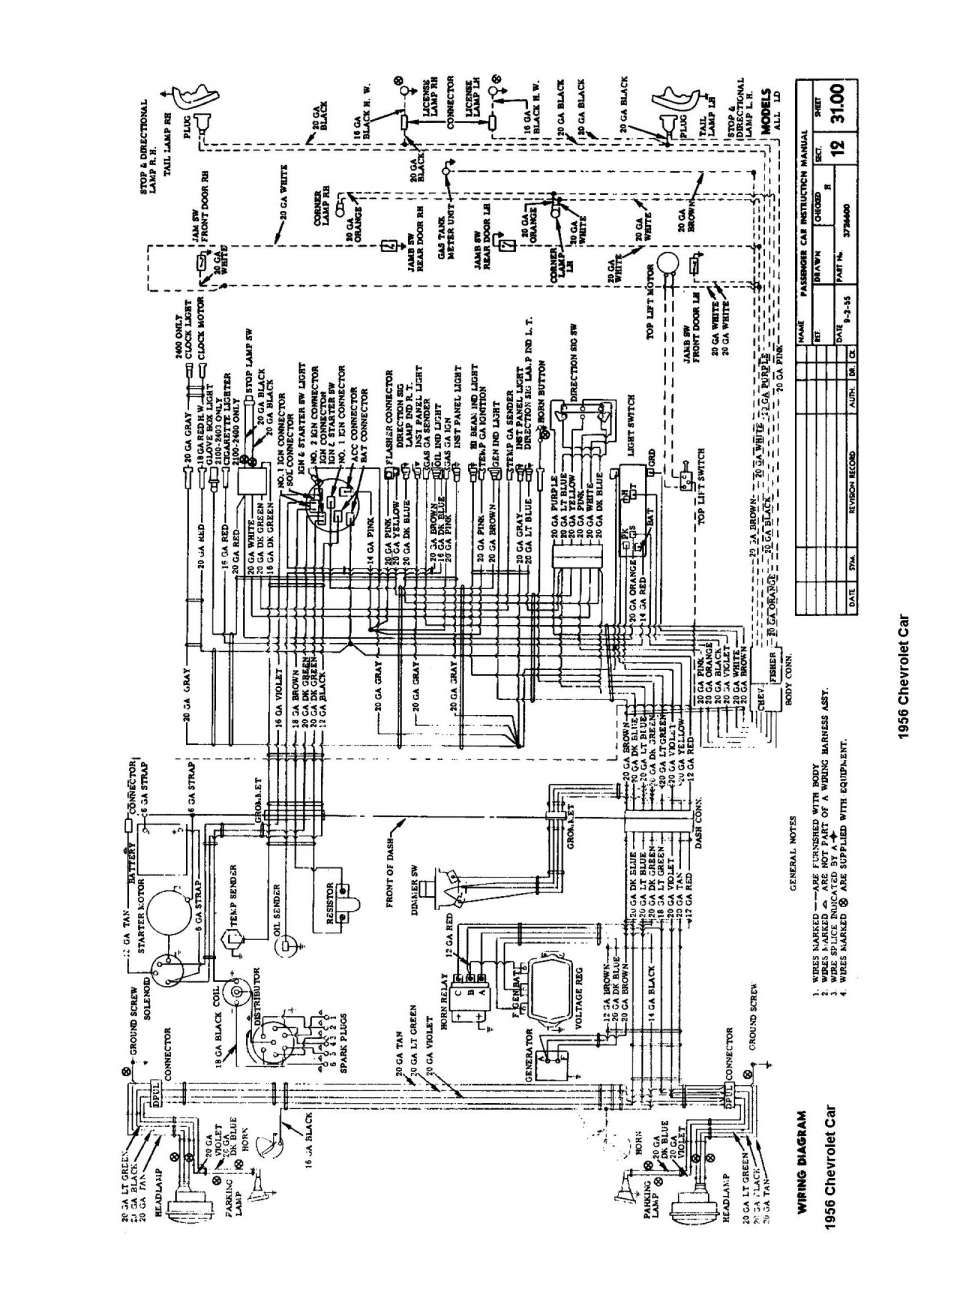 International Truck Wiring Diagram from i.pinimg.com